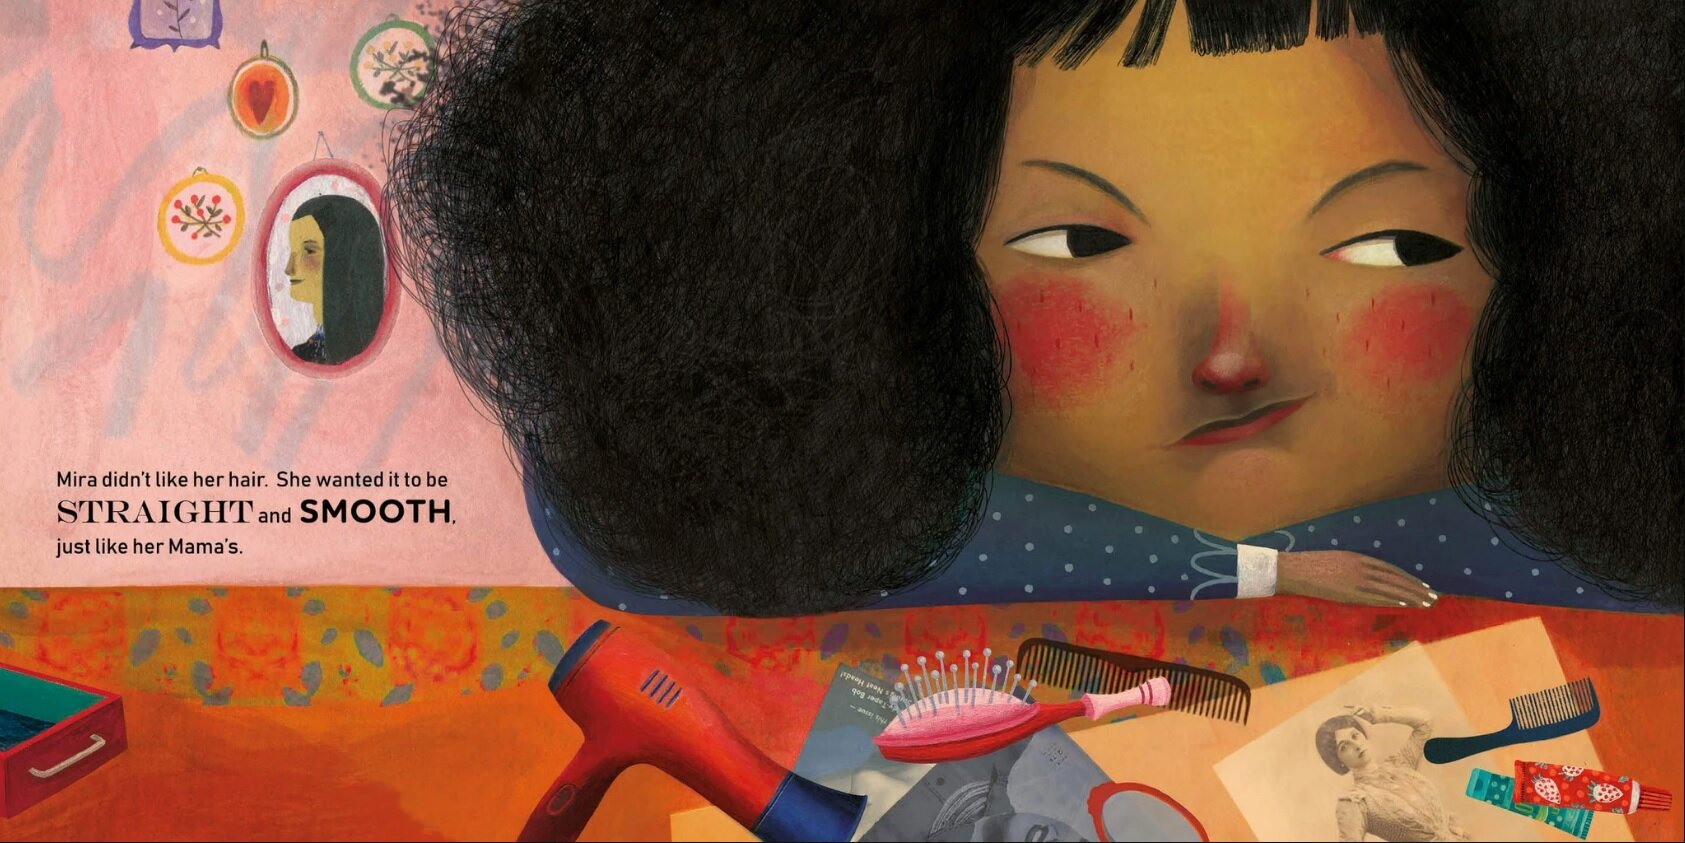 Supremely Unimpressed Face from  Mira's Curly Hair , by Maryam al Serkal, illustrated by Rebeca Luciani